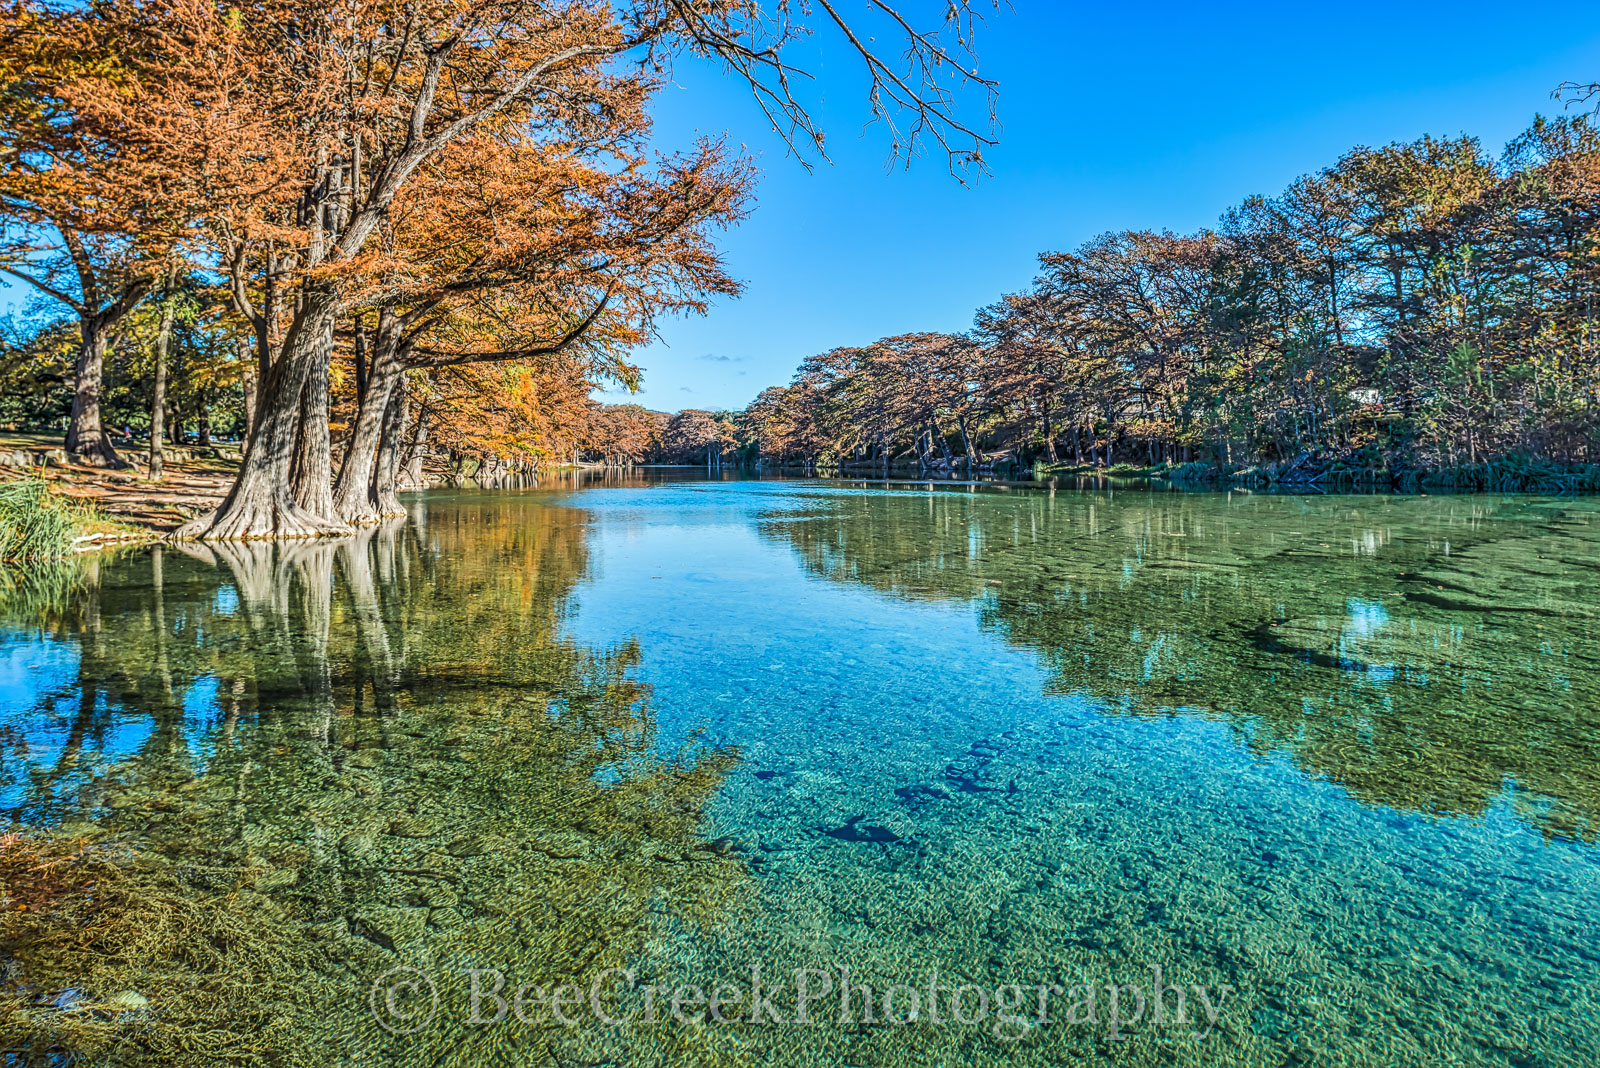 America, American, Frio River, Garner State Park, blue green waters, blue water, colorful, cypress trees, emerald, fall, fall colors, fall cypress trees, fall trees, images of Texas, landscape, , photo